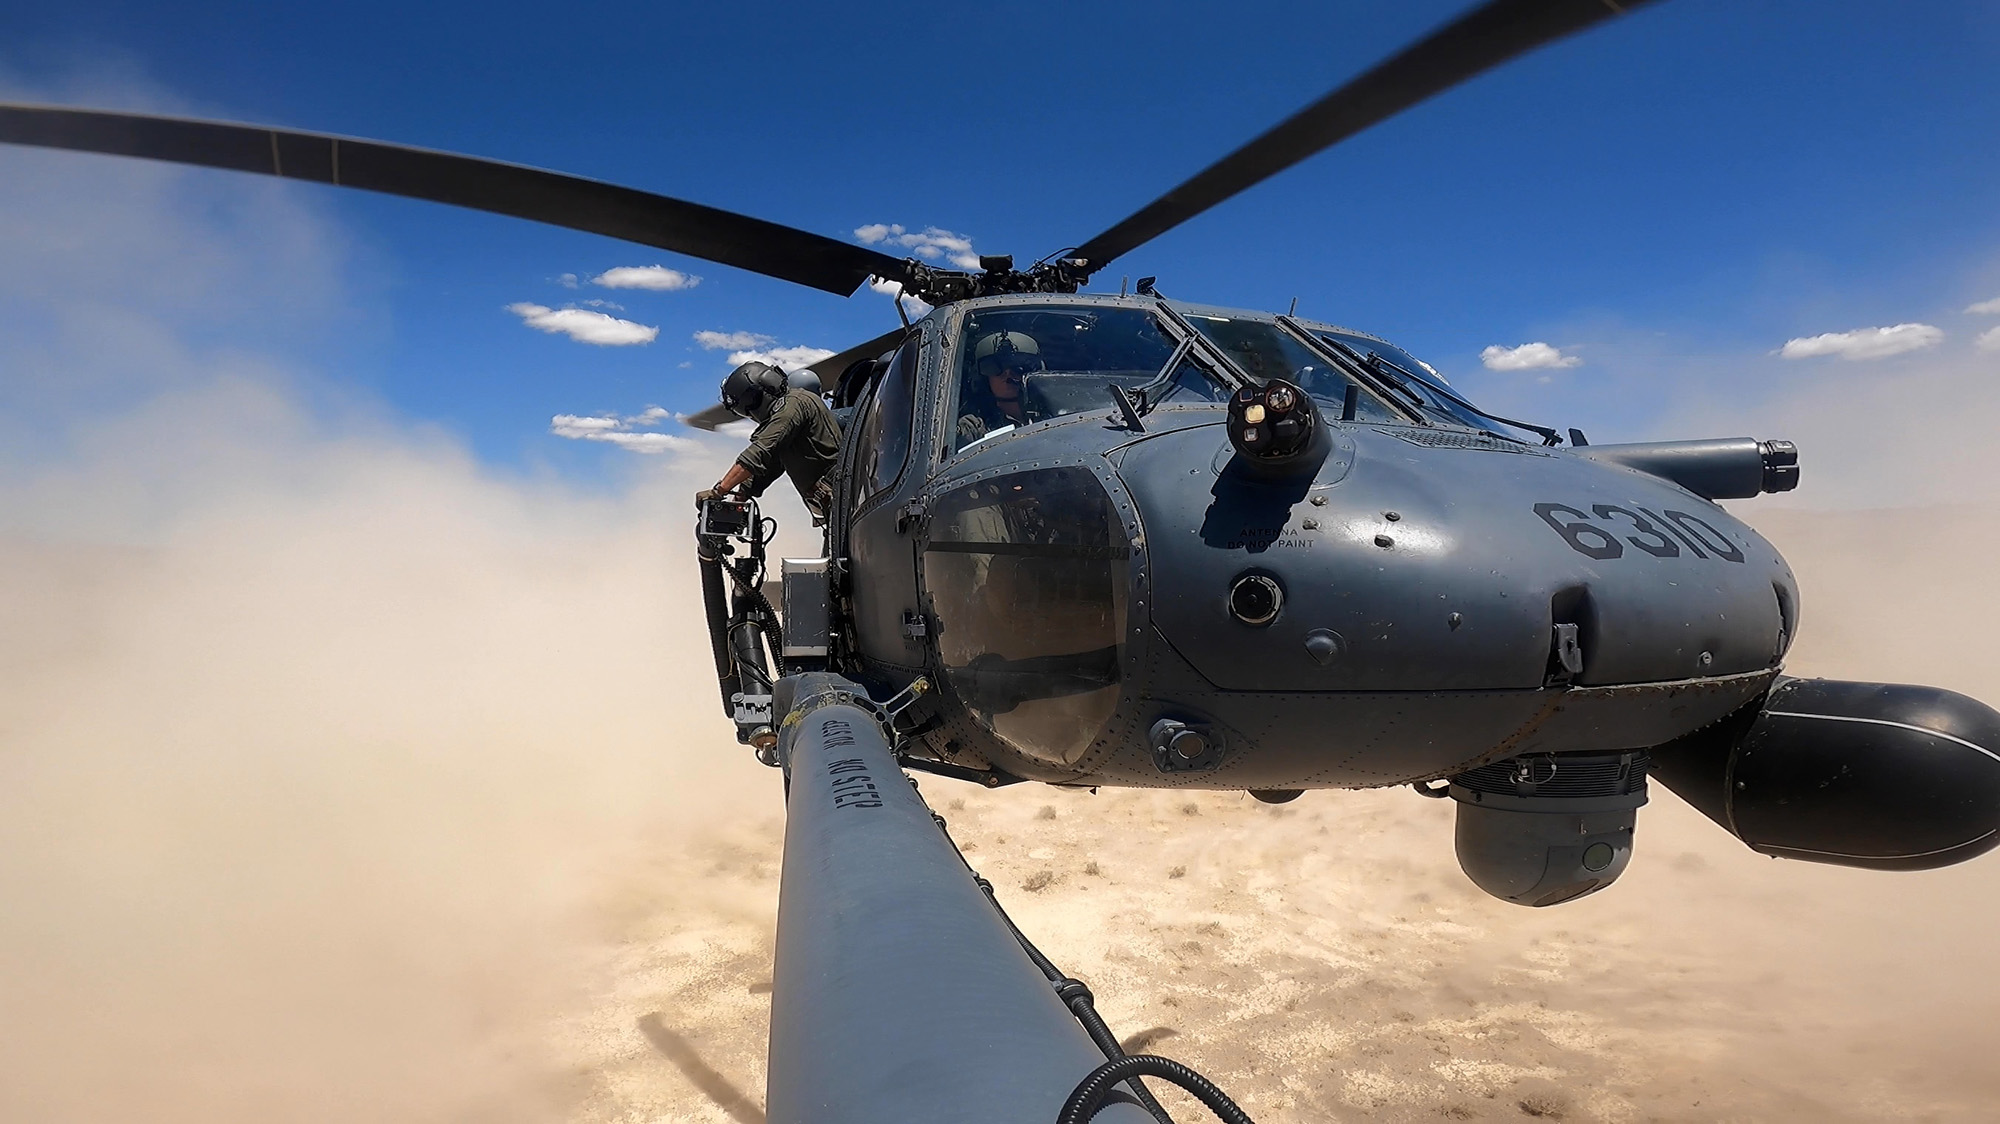 An HH-60G Pave Hawk lands during a training competition at the Nevada Test and Training Range, Nev., in this May 18, 2021, screen capture from video. (Airman 1st Class Zachary Rufus/Air Force)